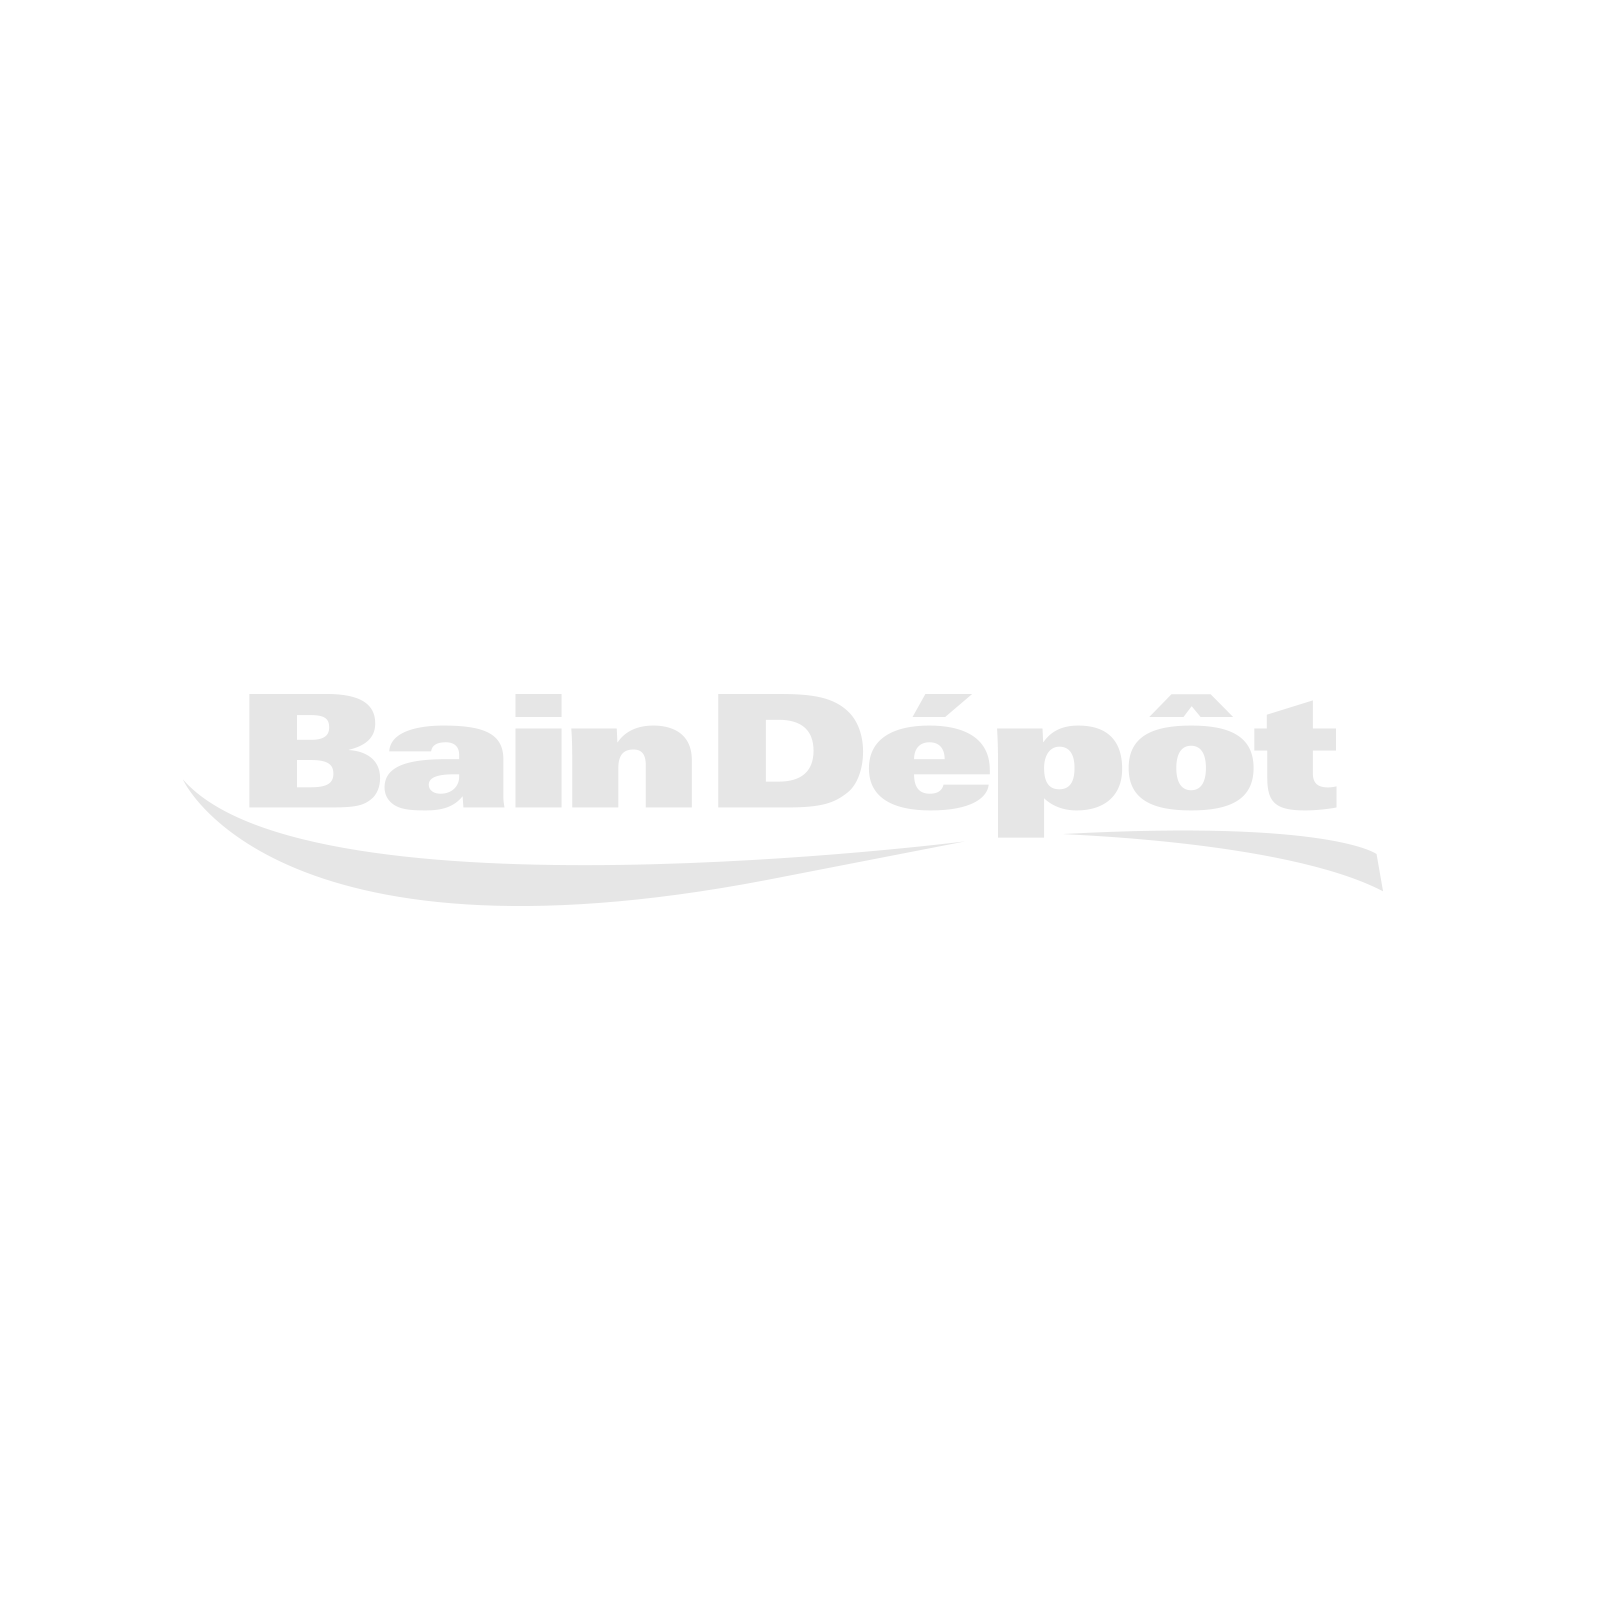 "48"" x 32"" rectangular shower base for right corner installation"